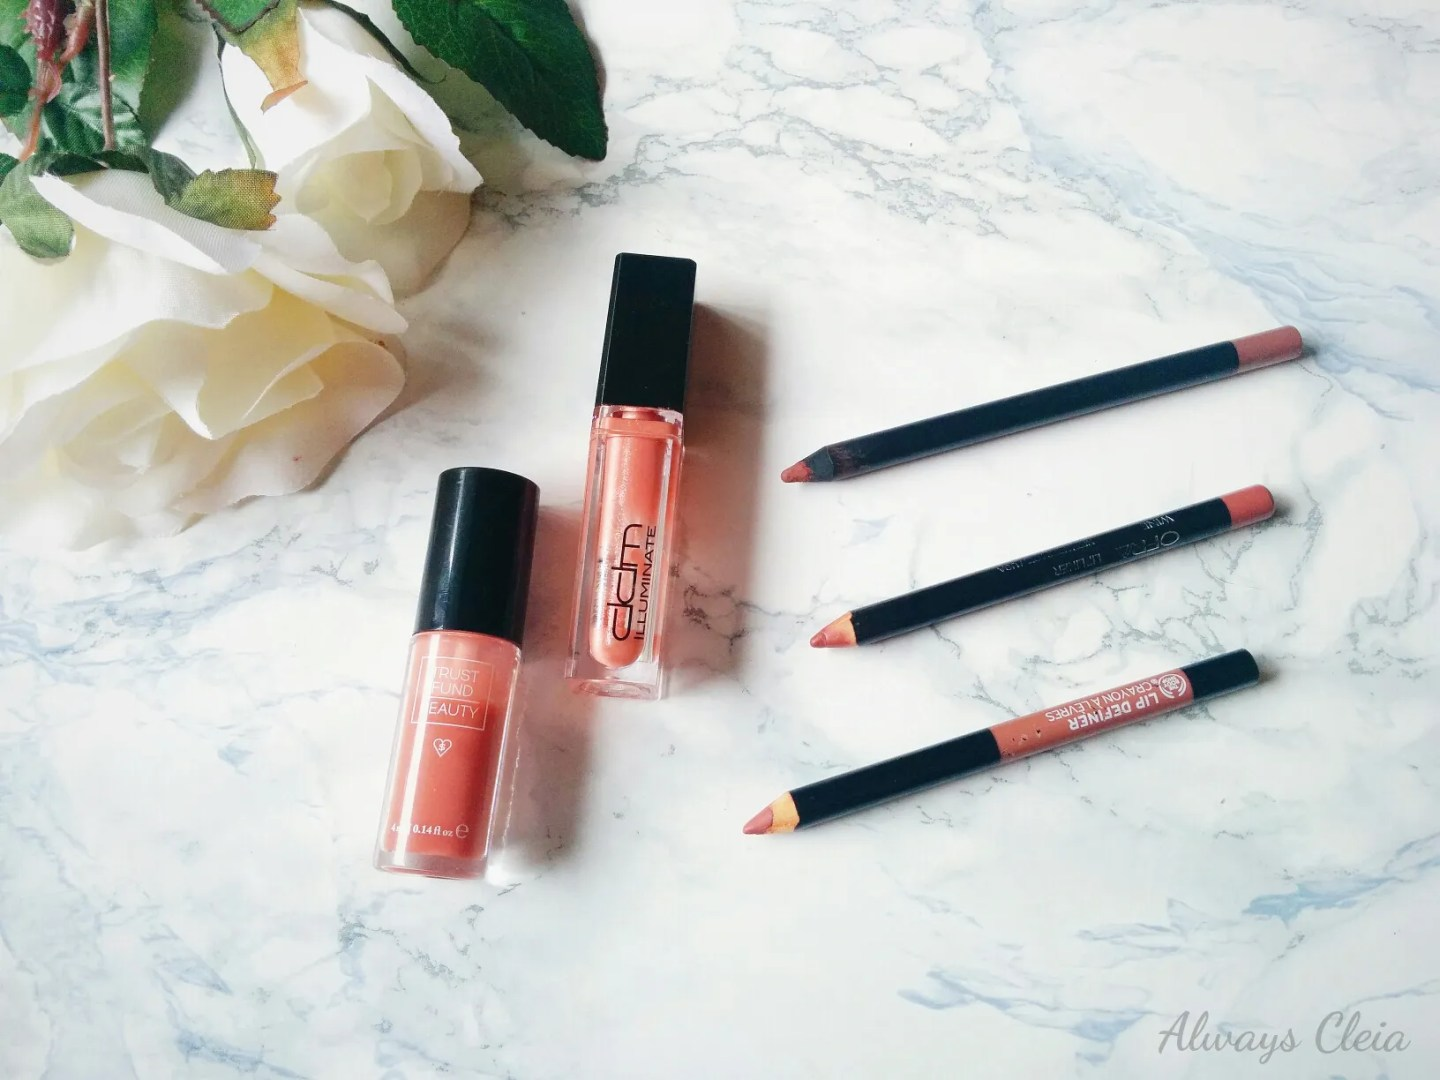 My Beauty Drawer: Lip Glosses & Lip Liners